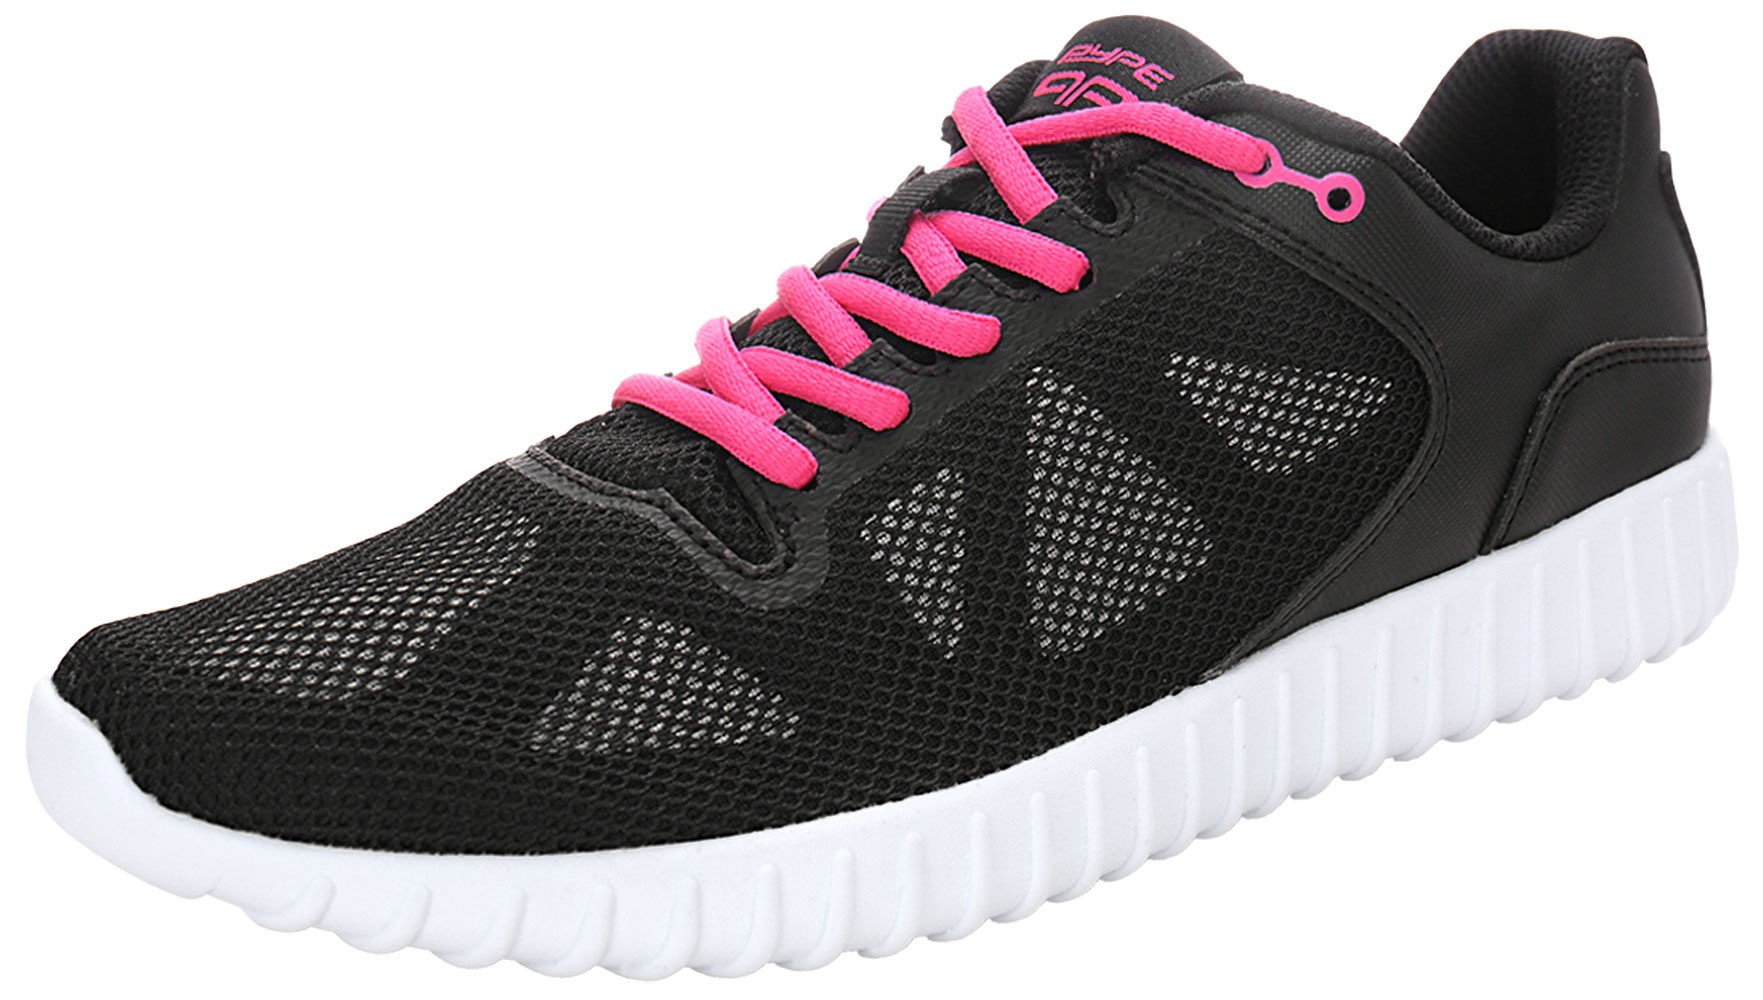 PYPE Women Geometric Prints Lace Up Mesh Training Shoes Black US 8